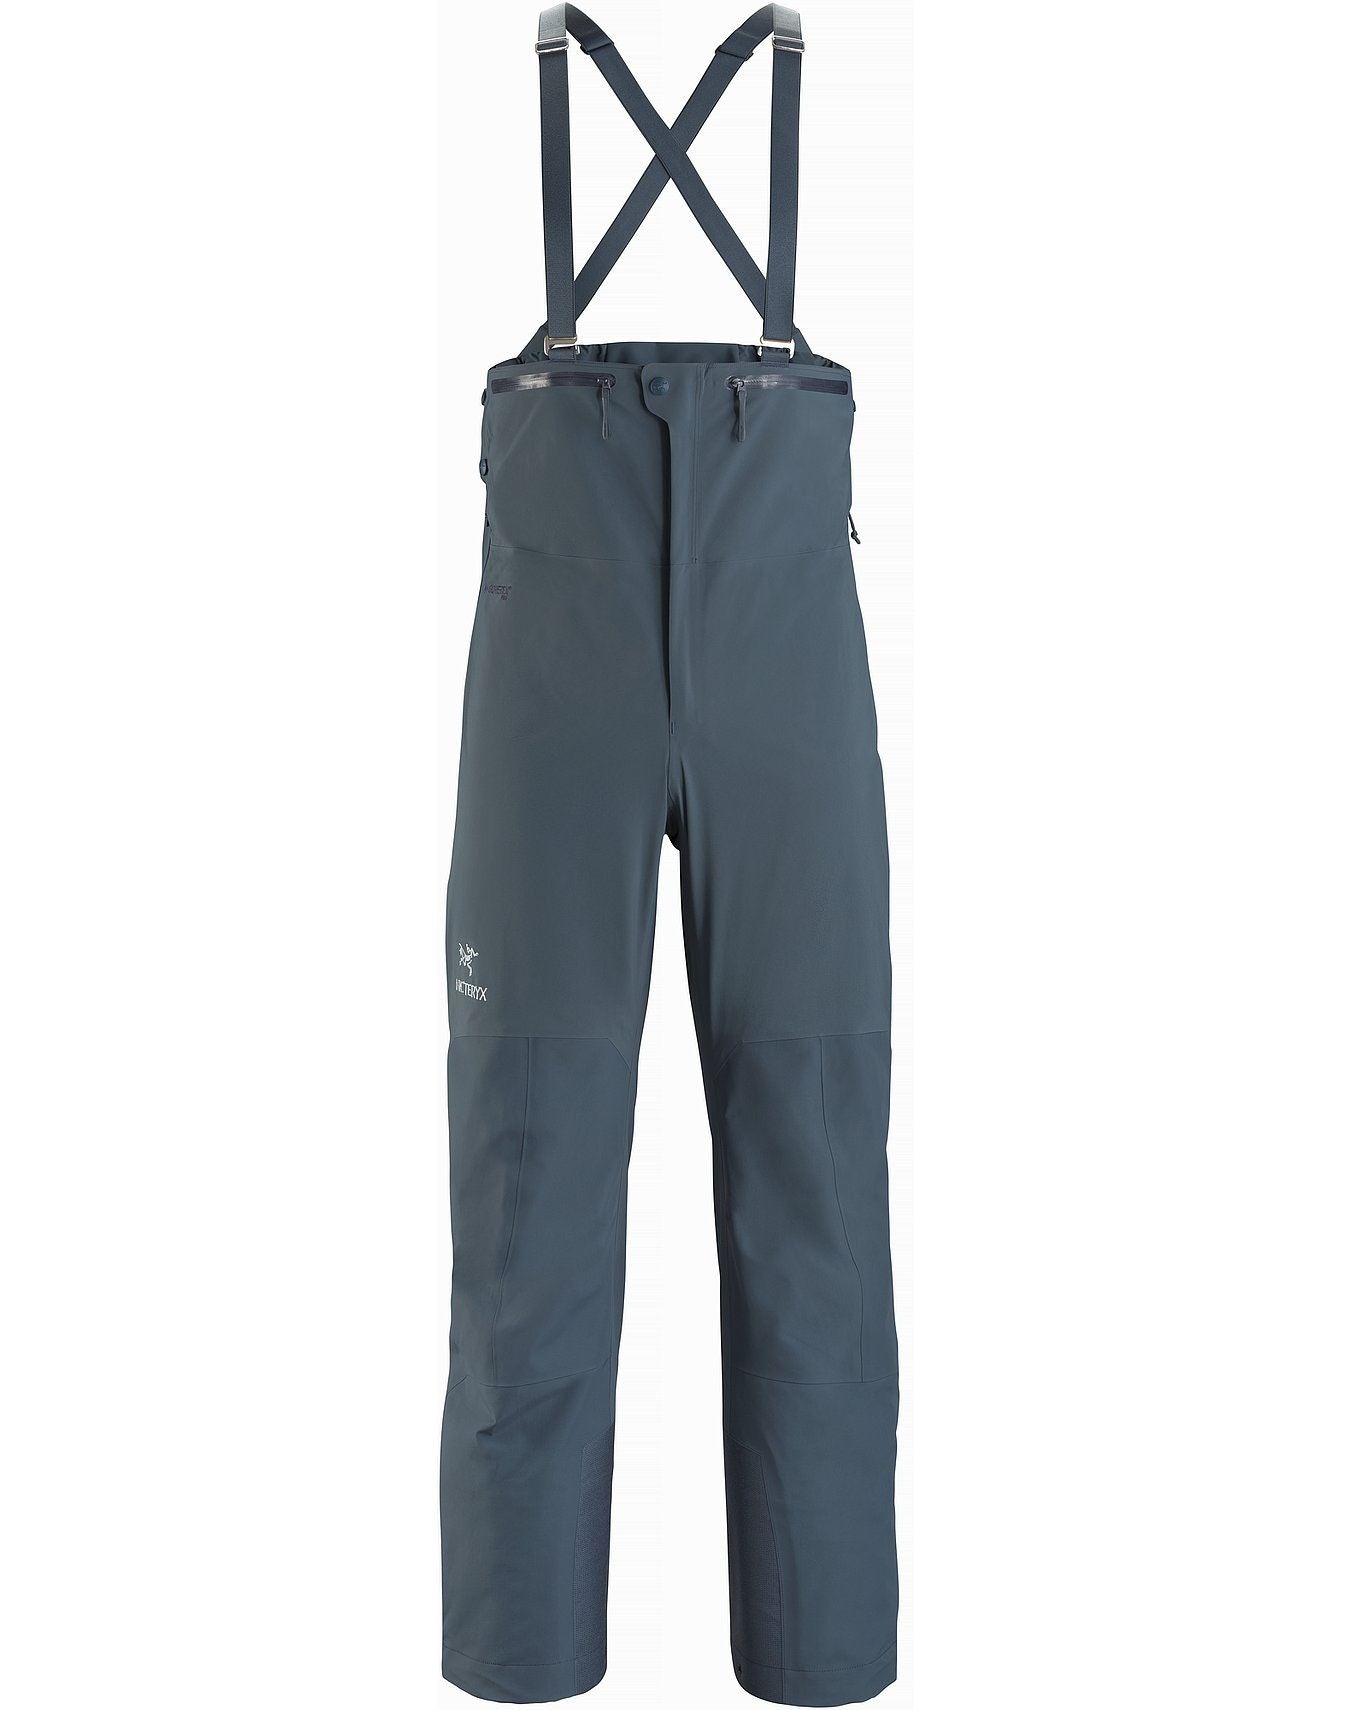 exclusive shoes speical offer available Beta SV Bib Pant Men's